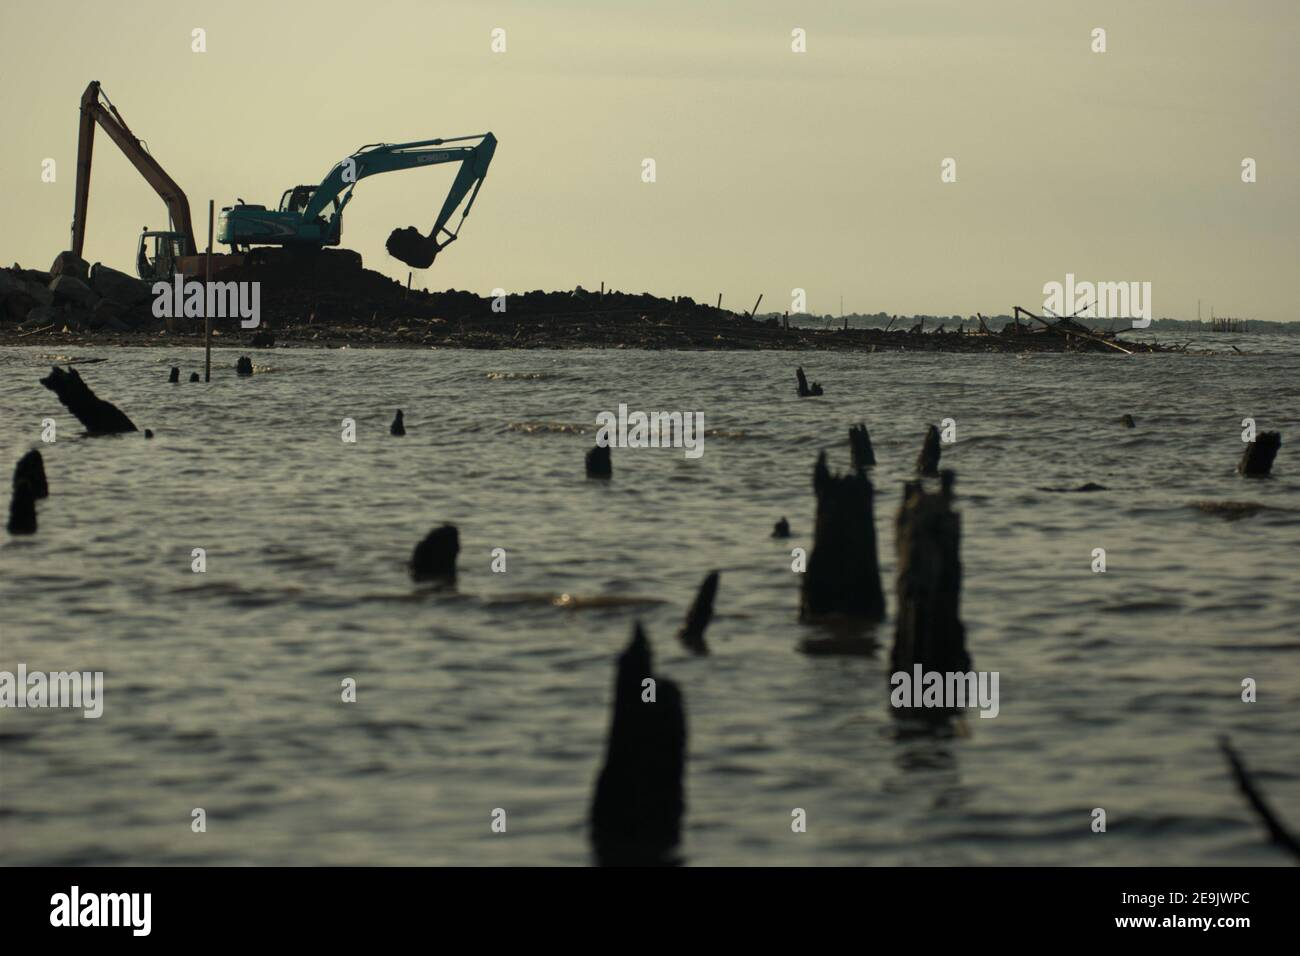 Land reclamation and beach landscaping activity in Pantai Indah Kapuk, close to a residential complex in the coastal area of Jakarta, Indonesia. Stock Photo